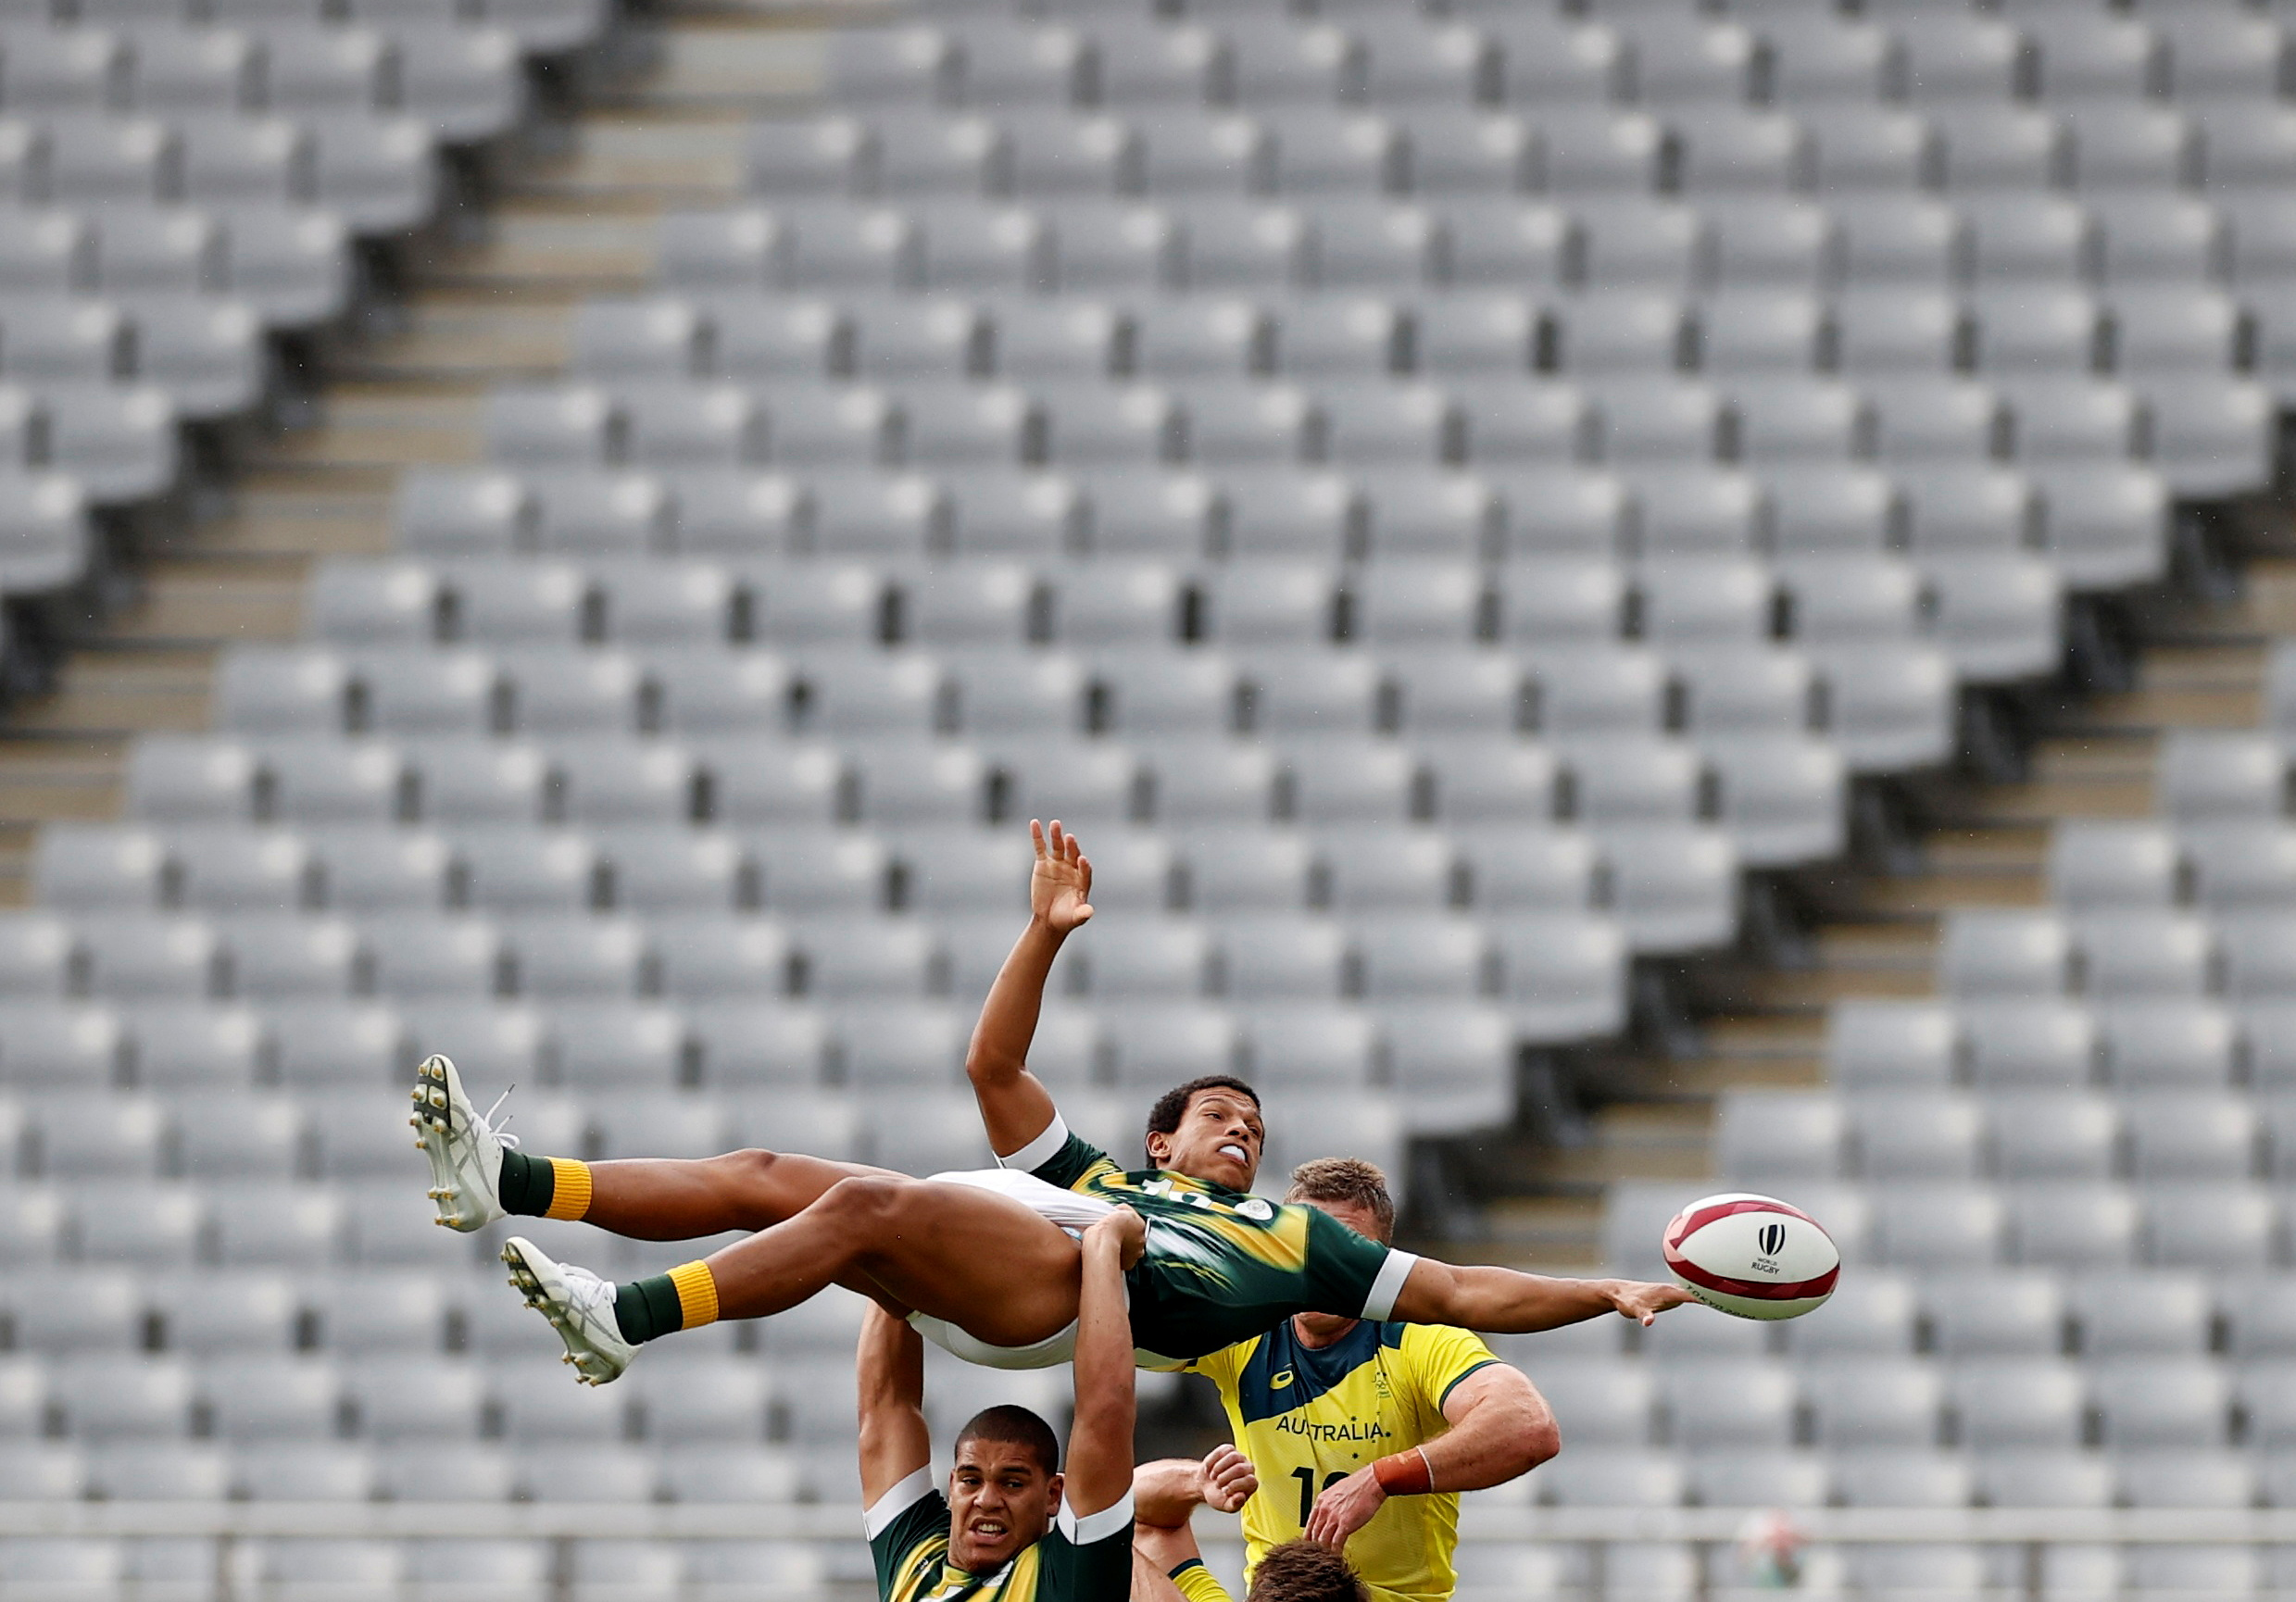 Tokyo 2020 Olympics - Rugby Sevens - Men - Classification Round 5-8 - South Africa v Australia - Tokyo Stadium - Tokyo, Japan - July 28, 2021. Kurt-Lee Arendse of South Africa in action. REUTERS/Phil Noble     TPX IMAGES OF THE DAY